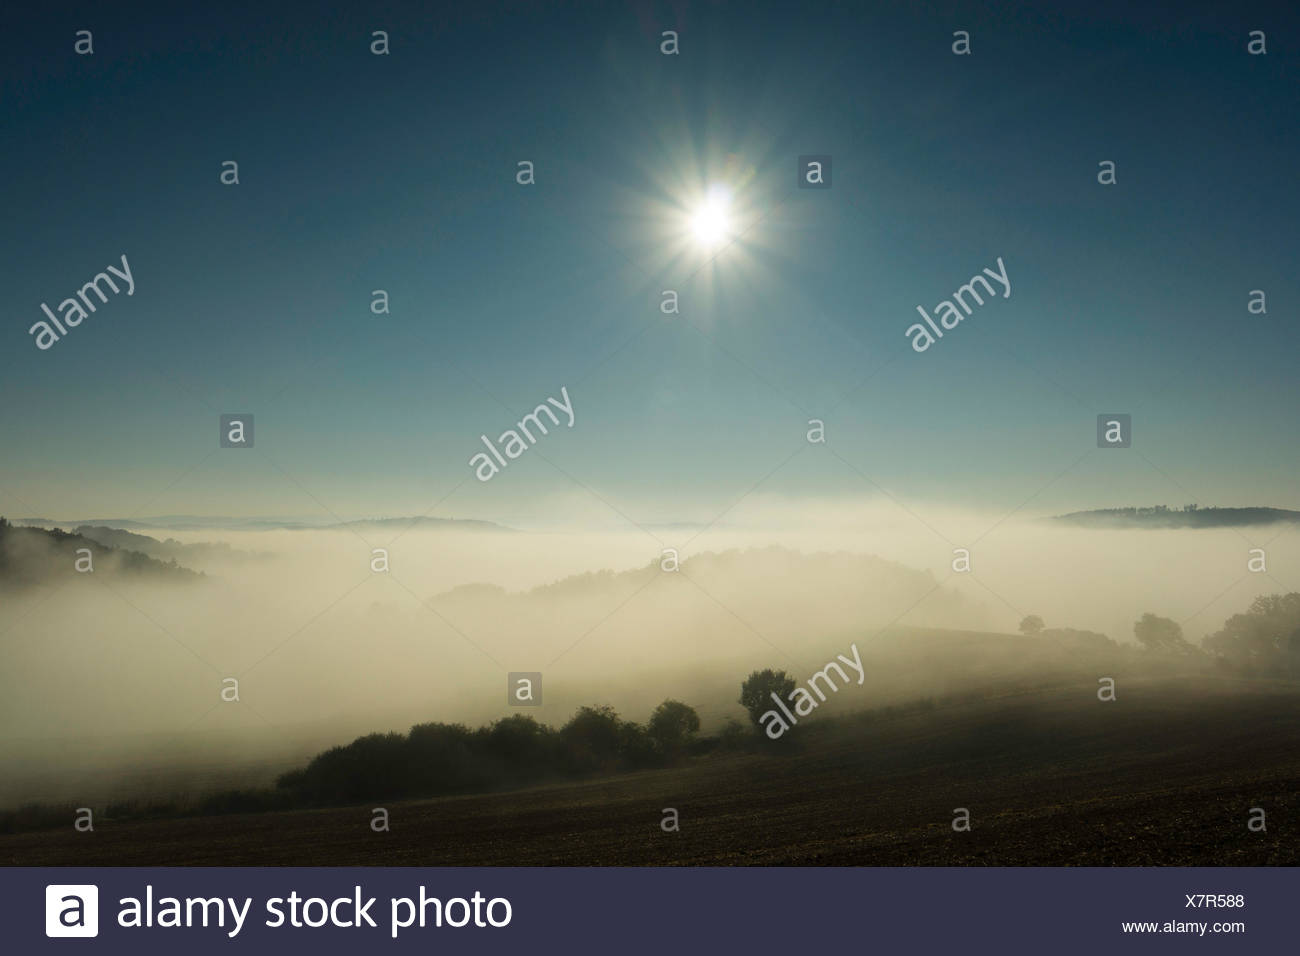 morning sun over a misty vally in autumn, Germany, Saxony, Vogtland - Stock Image